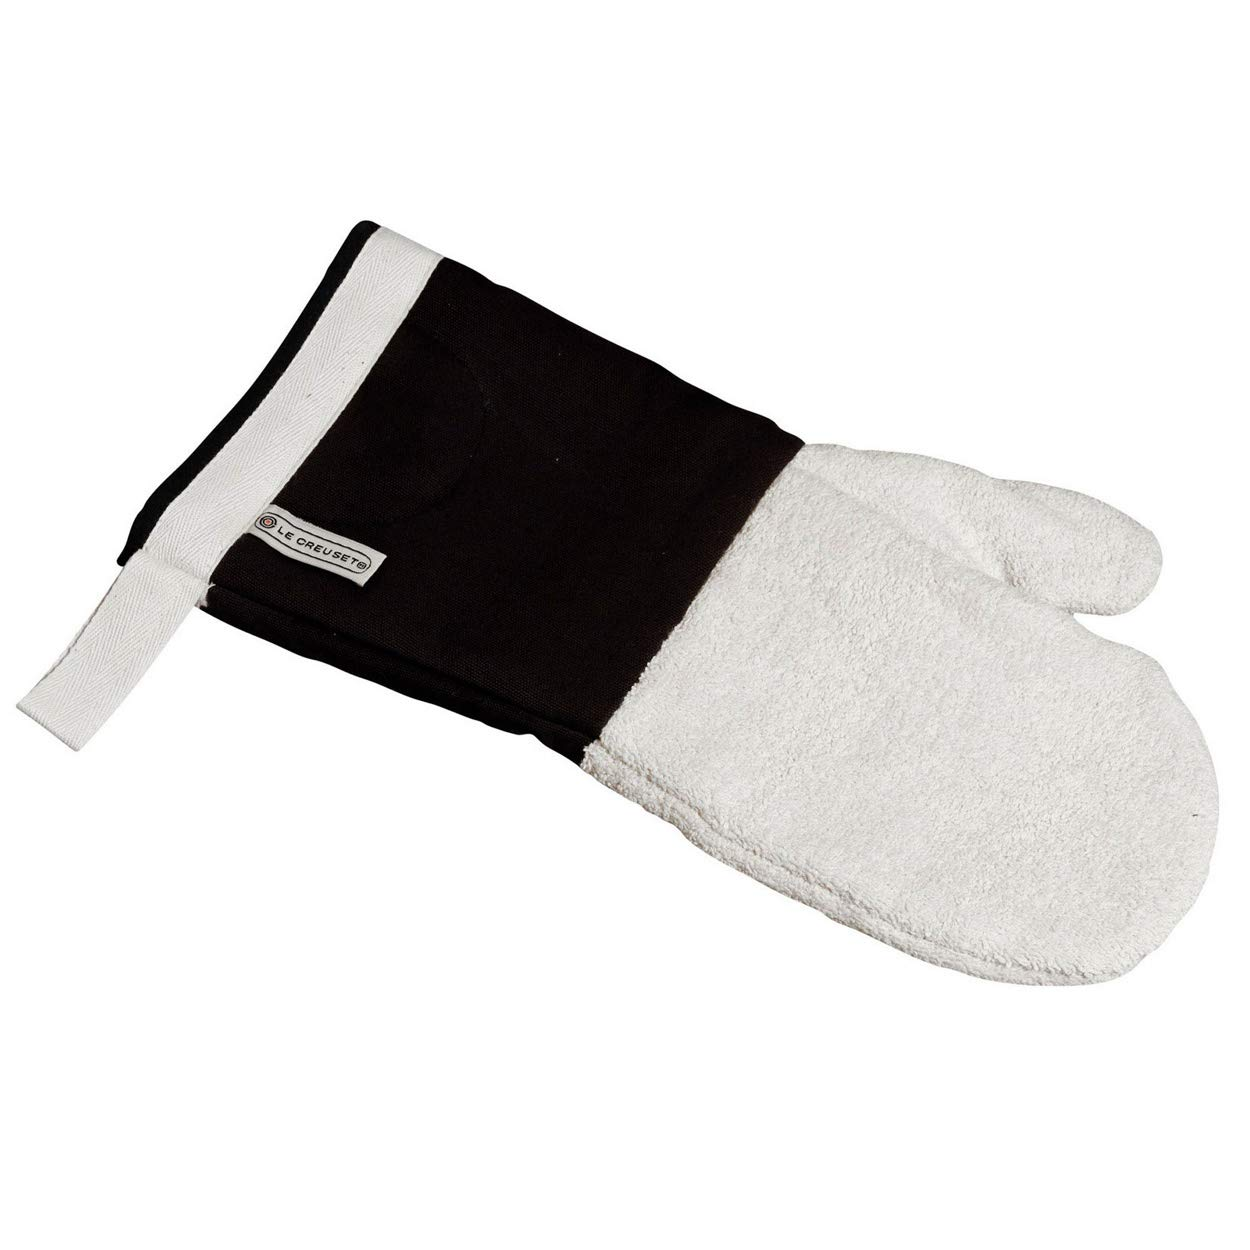 Le Creuset Textiles Oven Mitt, 14 Inch - Black/Beige TH4911-31 kitchen accessories oven gloves oven gauntlet